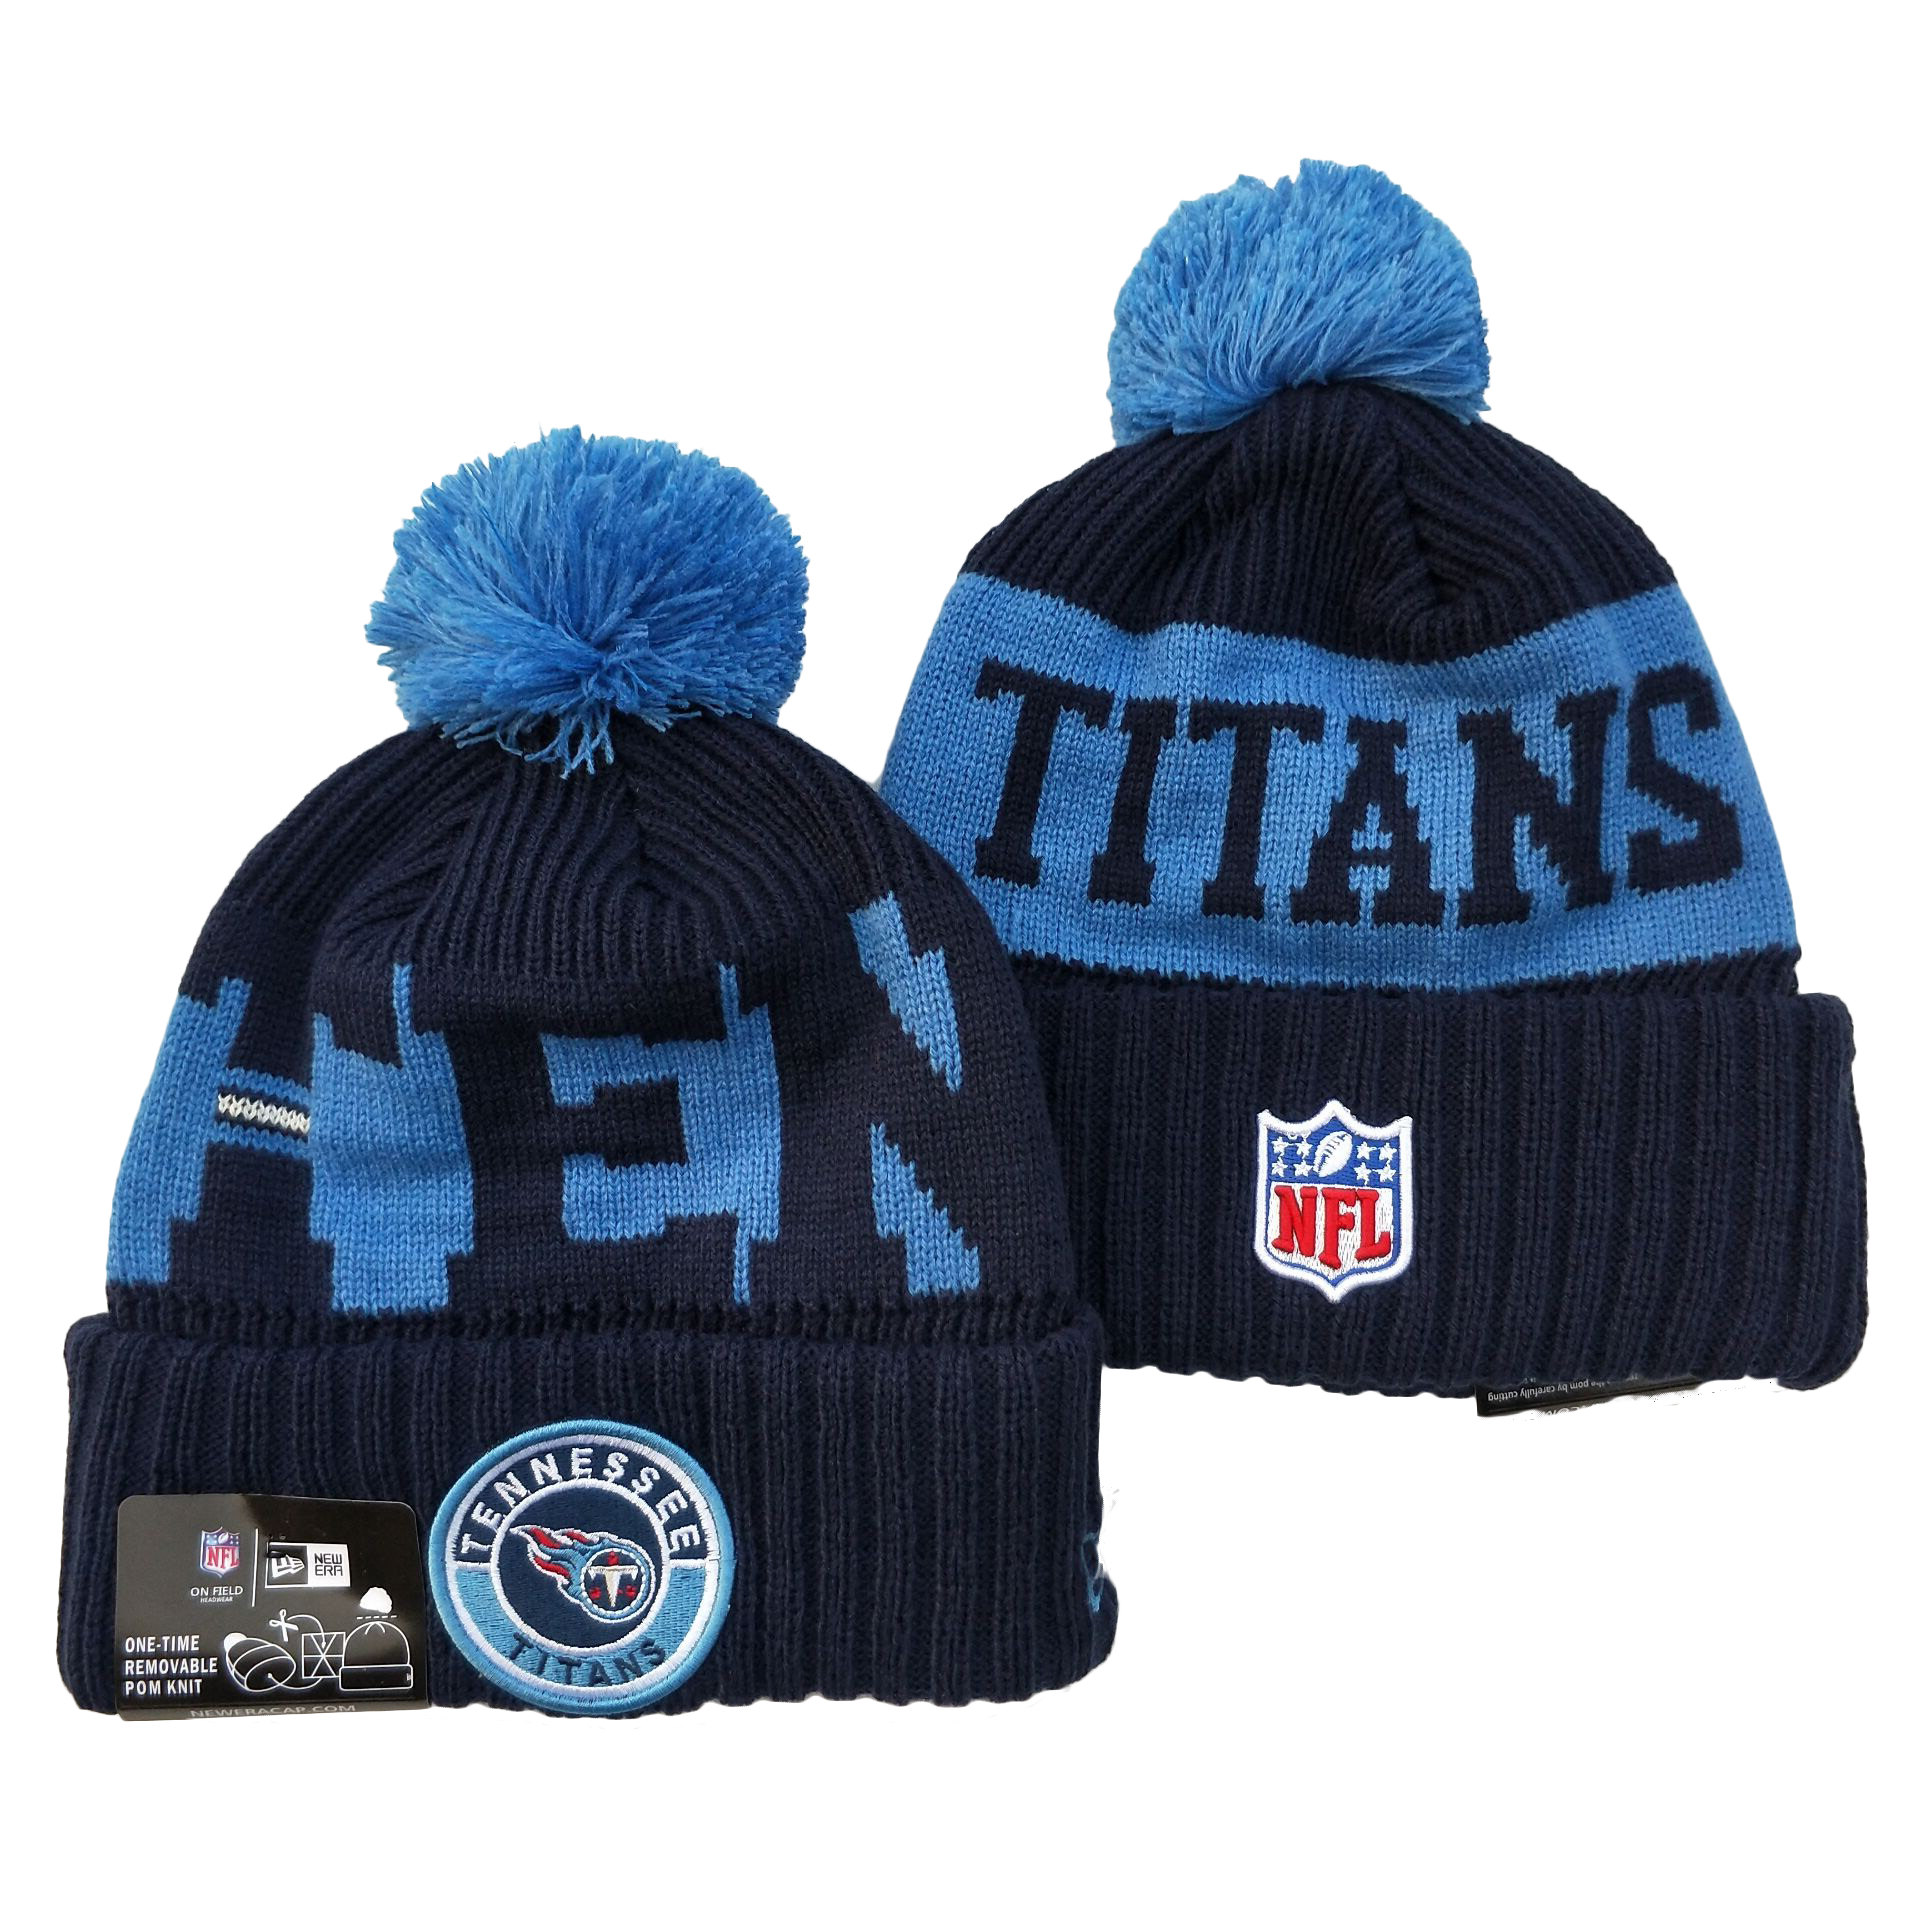 Tennessee Titans Knit Hats 030